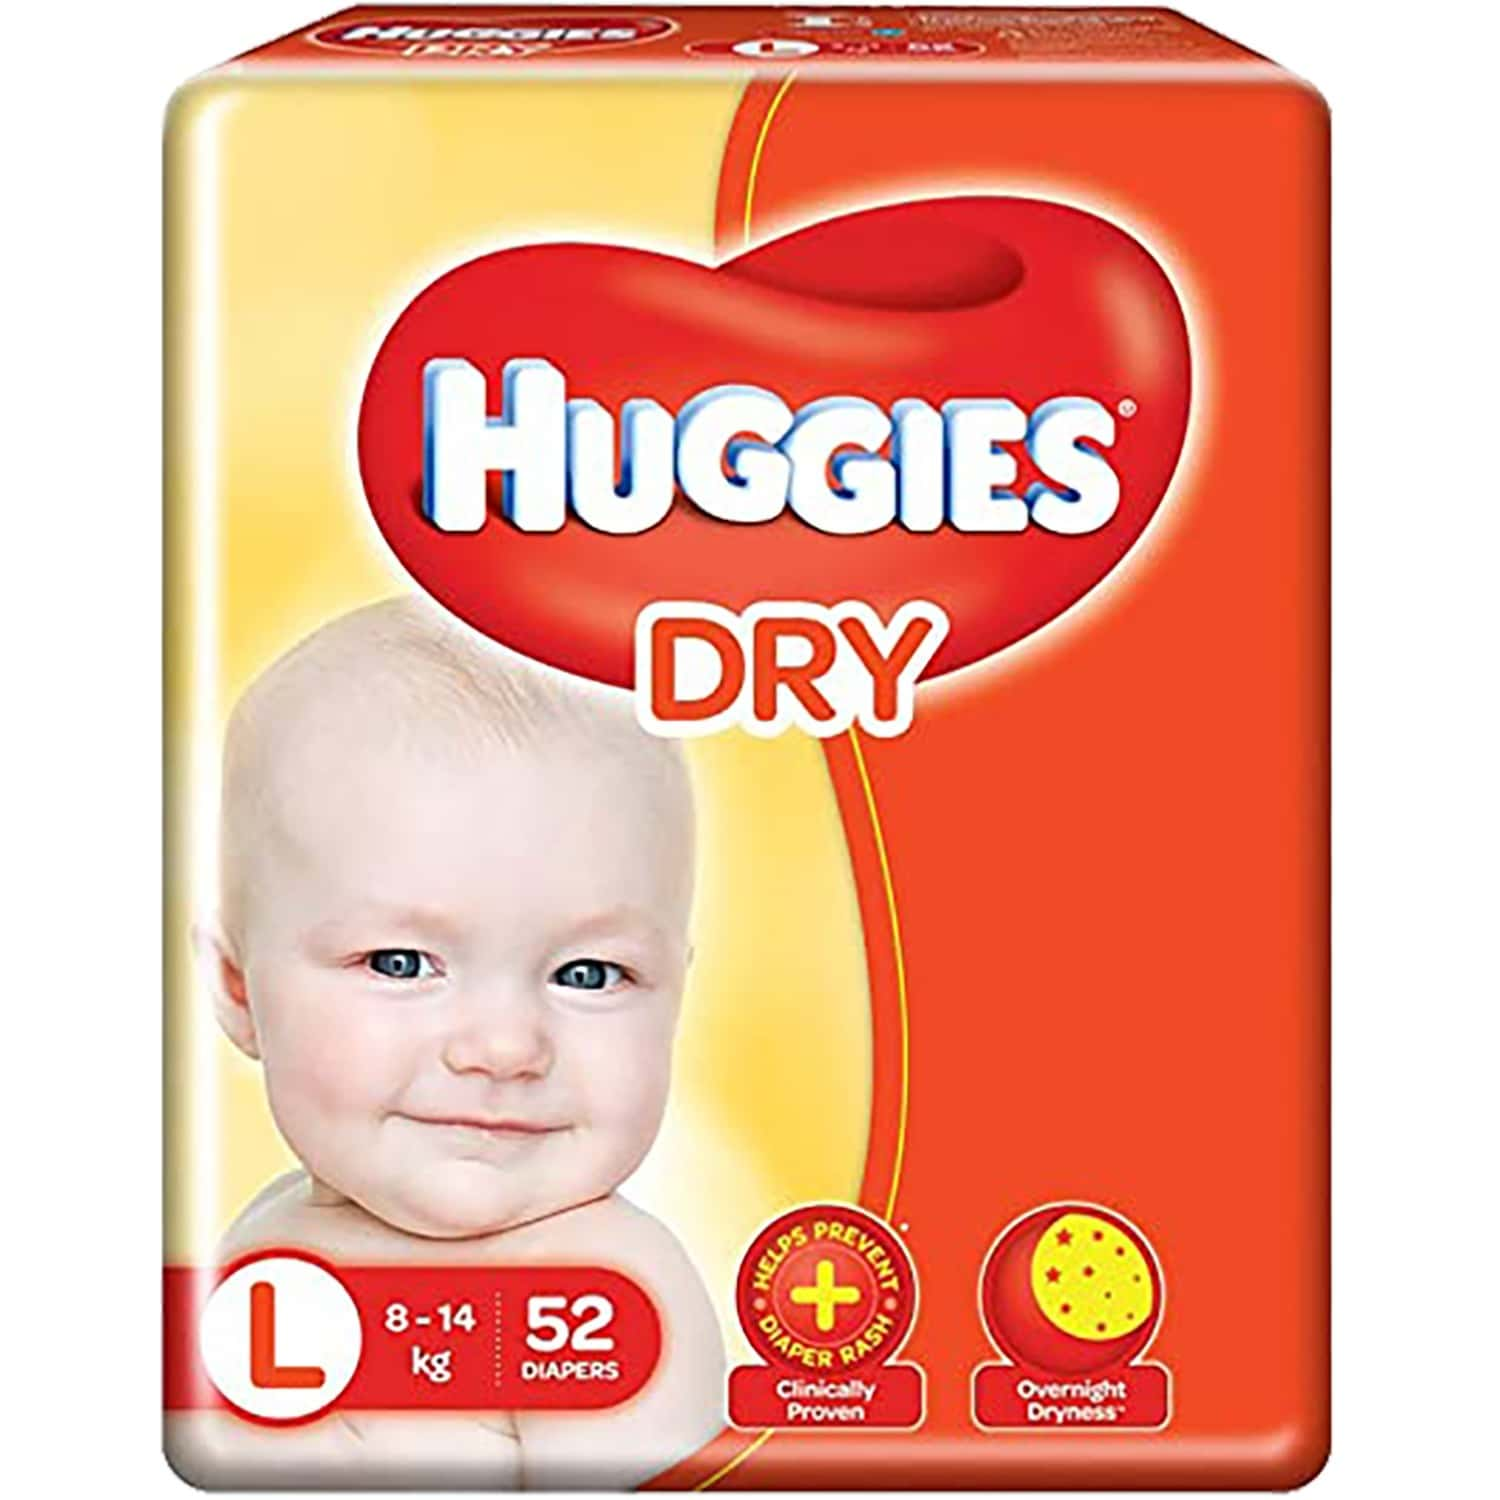 Huggies New Dry Large Size Diapers - 52 Count